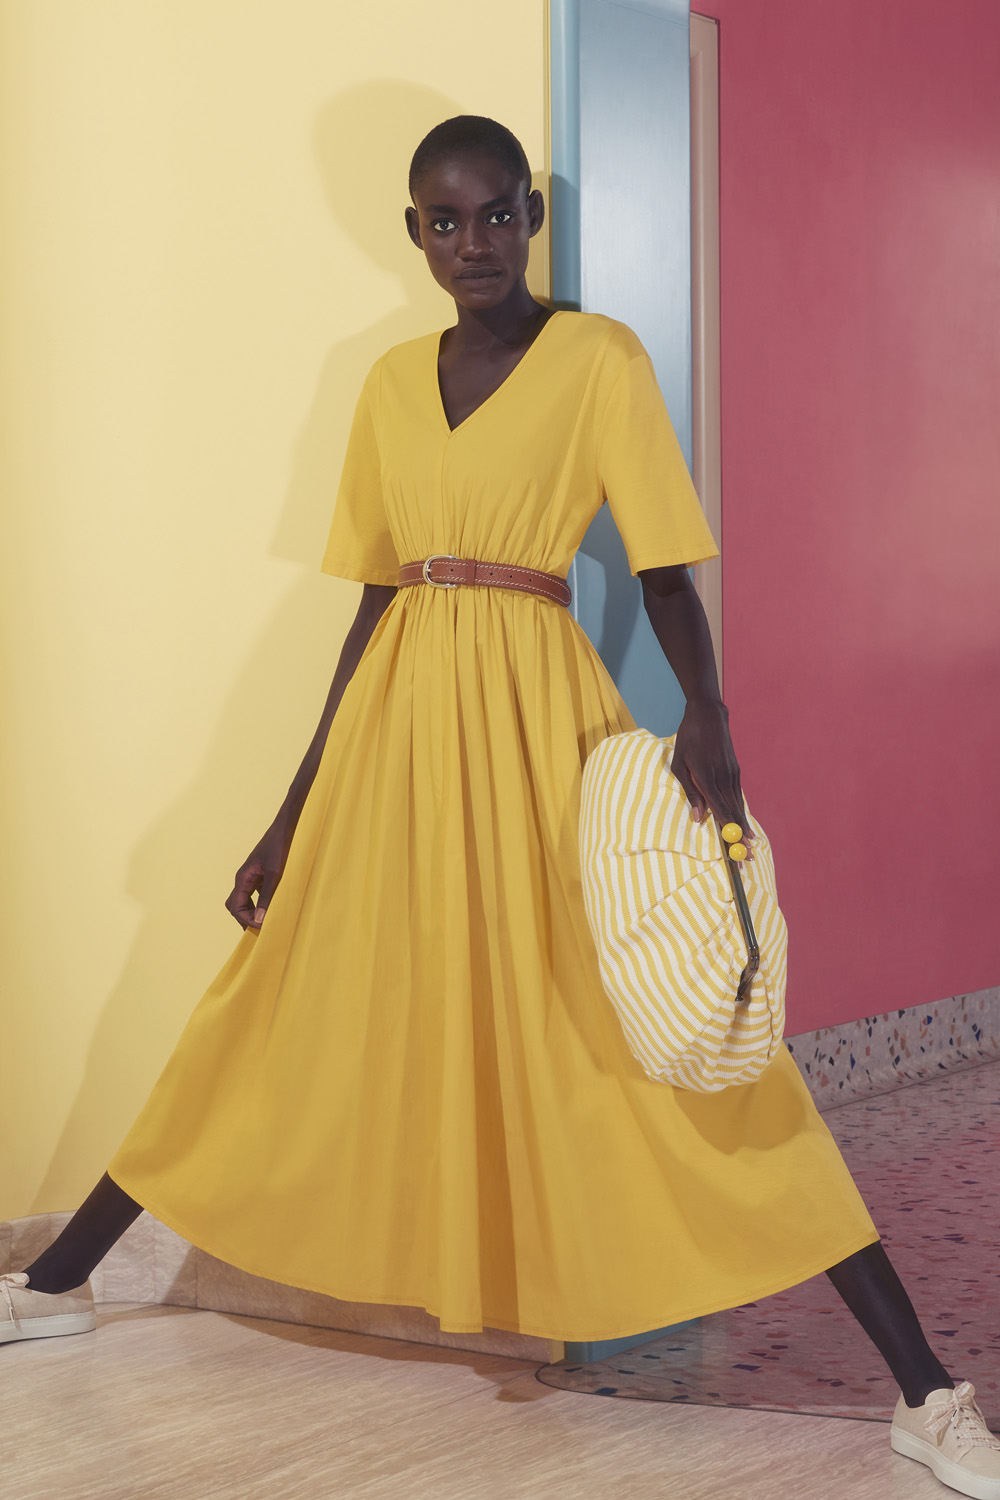 1. kép: Weekend Max Mara Collection - Summer Breeze